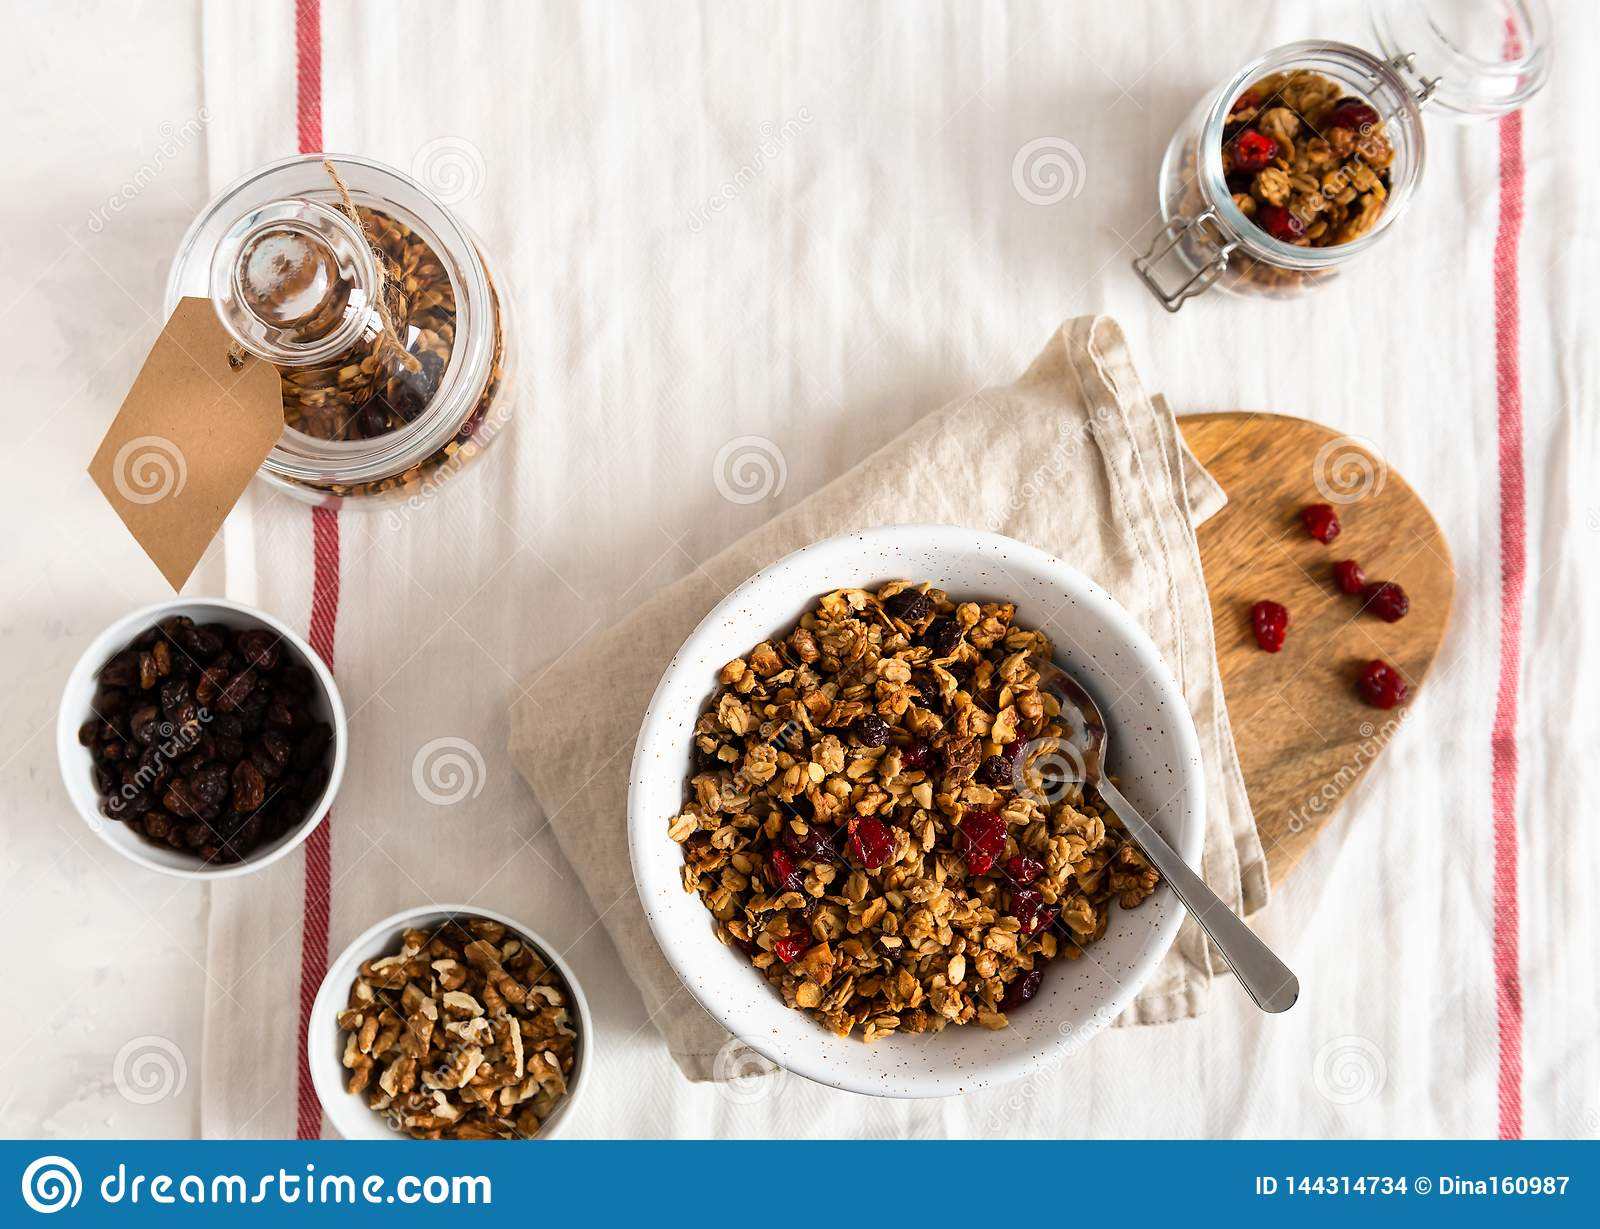 Dry breakfast cereals. Crunchy honey granola bowl with flax seeds, cranberries and coconut. Healthy, vegeterian fiber food.